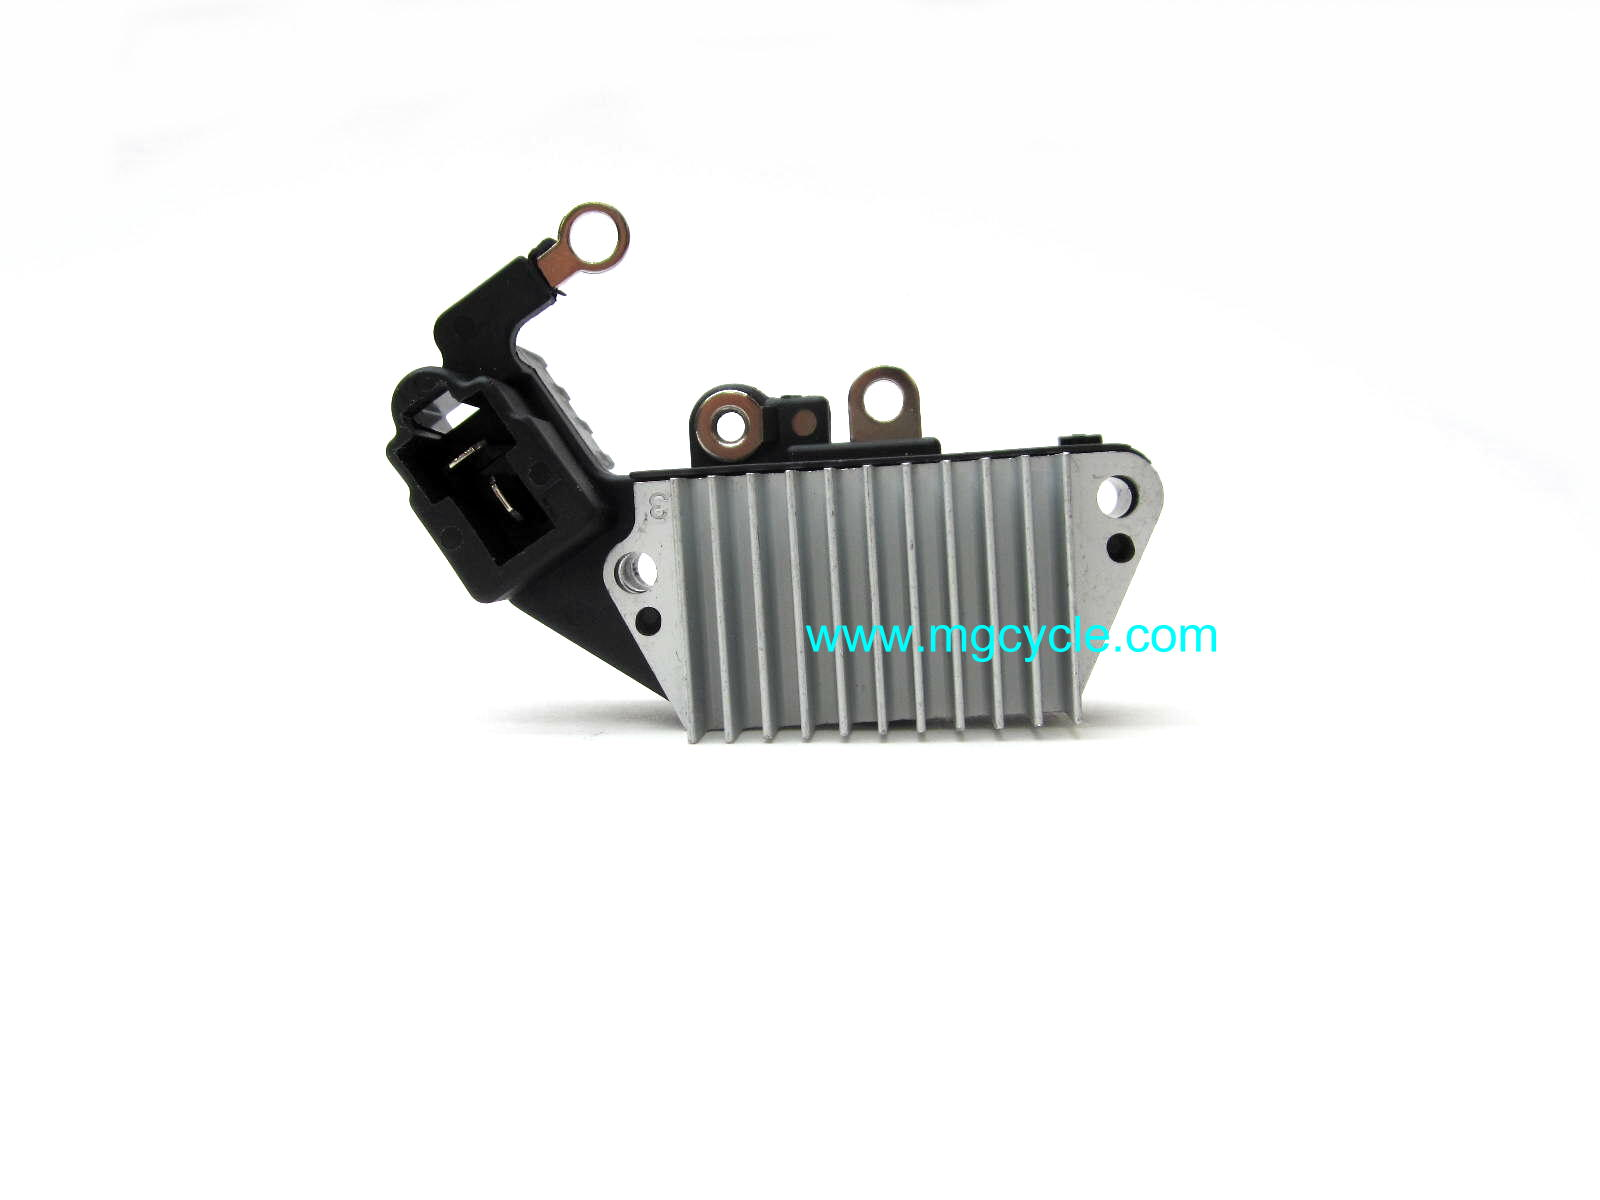 Voltage regulator Denso alternator early CARC models